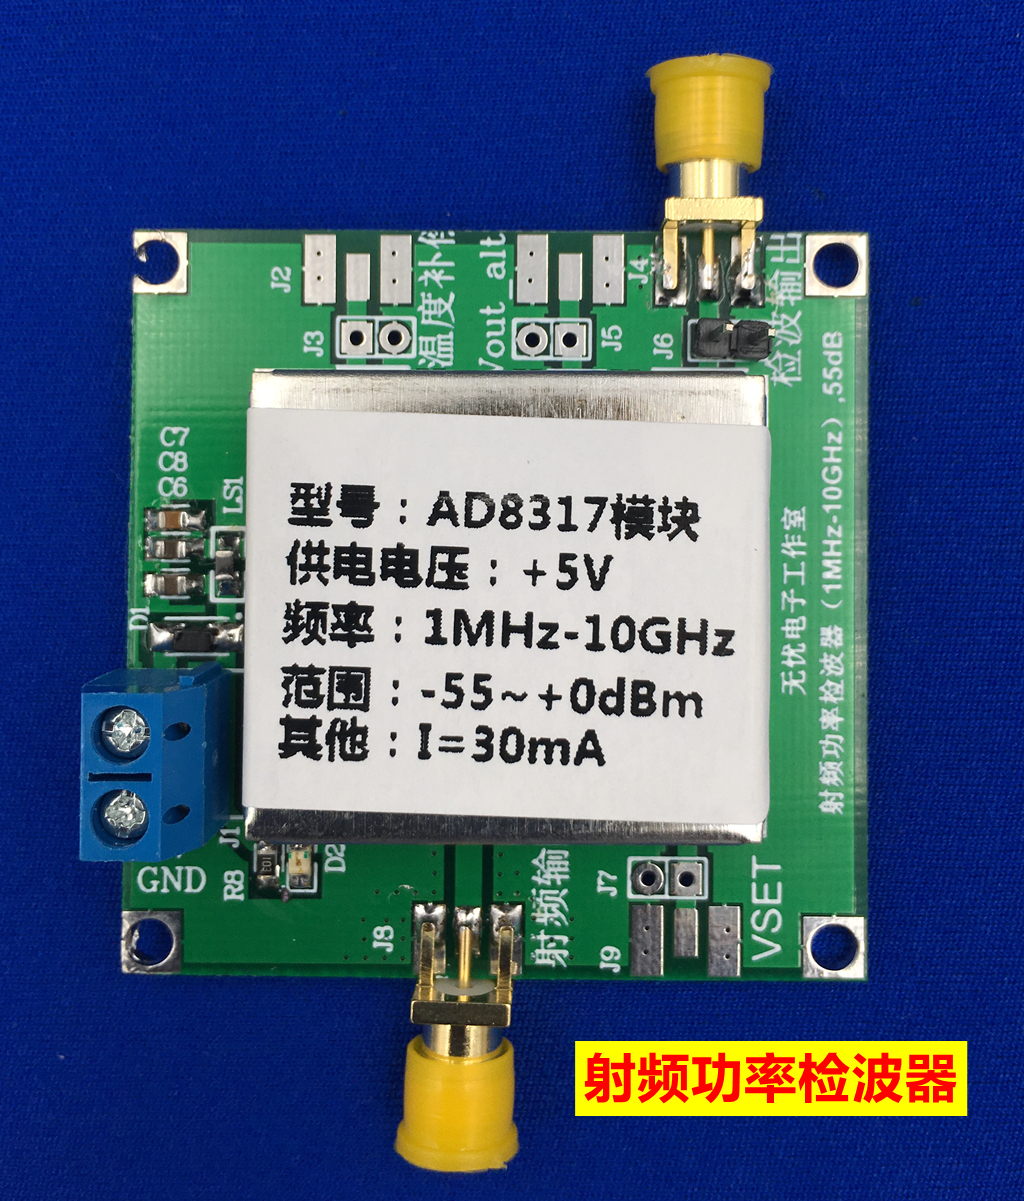 Free Tracking AD8317 (1-10000MHz) RF Power Meter Logarithmic Detector Controller 1MHz to 10GHz for AmplifierS fm  HF VHF UHF